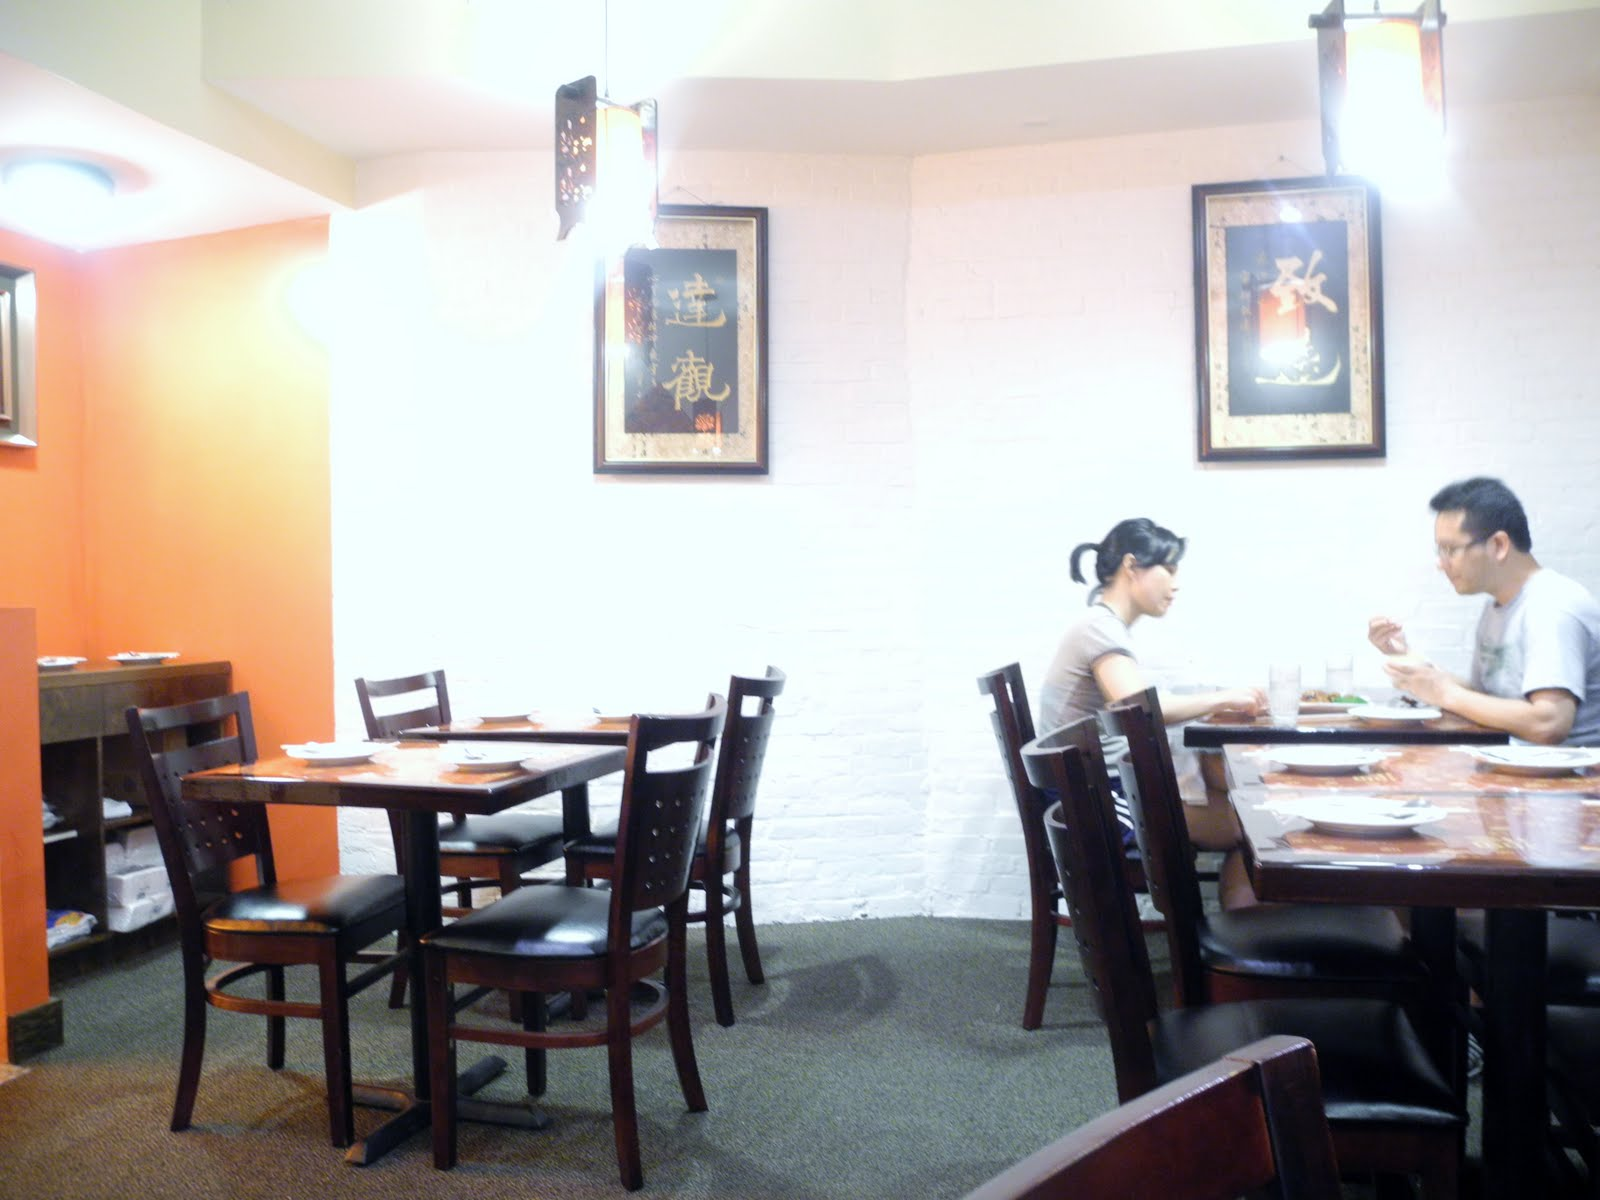 Grand Sichuan UWS Delivers on Flavor, Fails on Spice